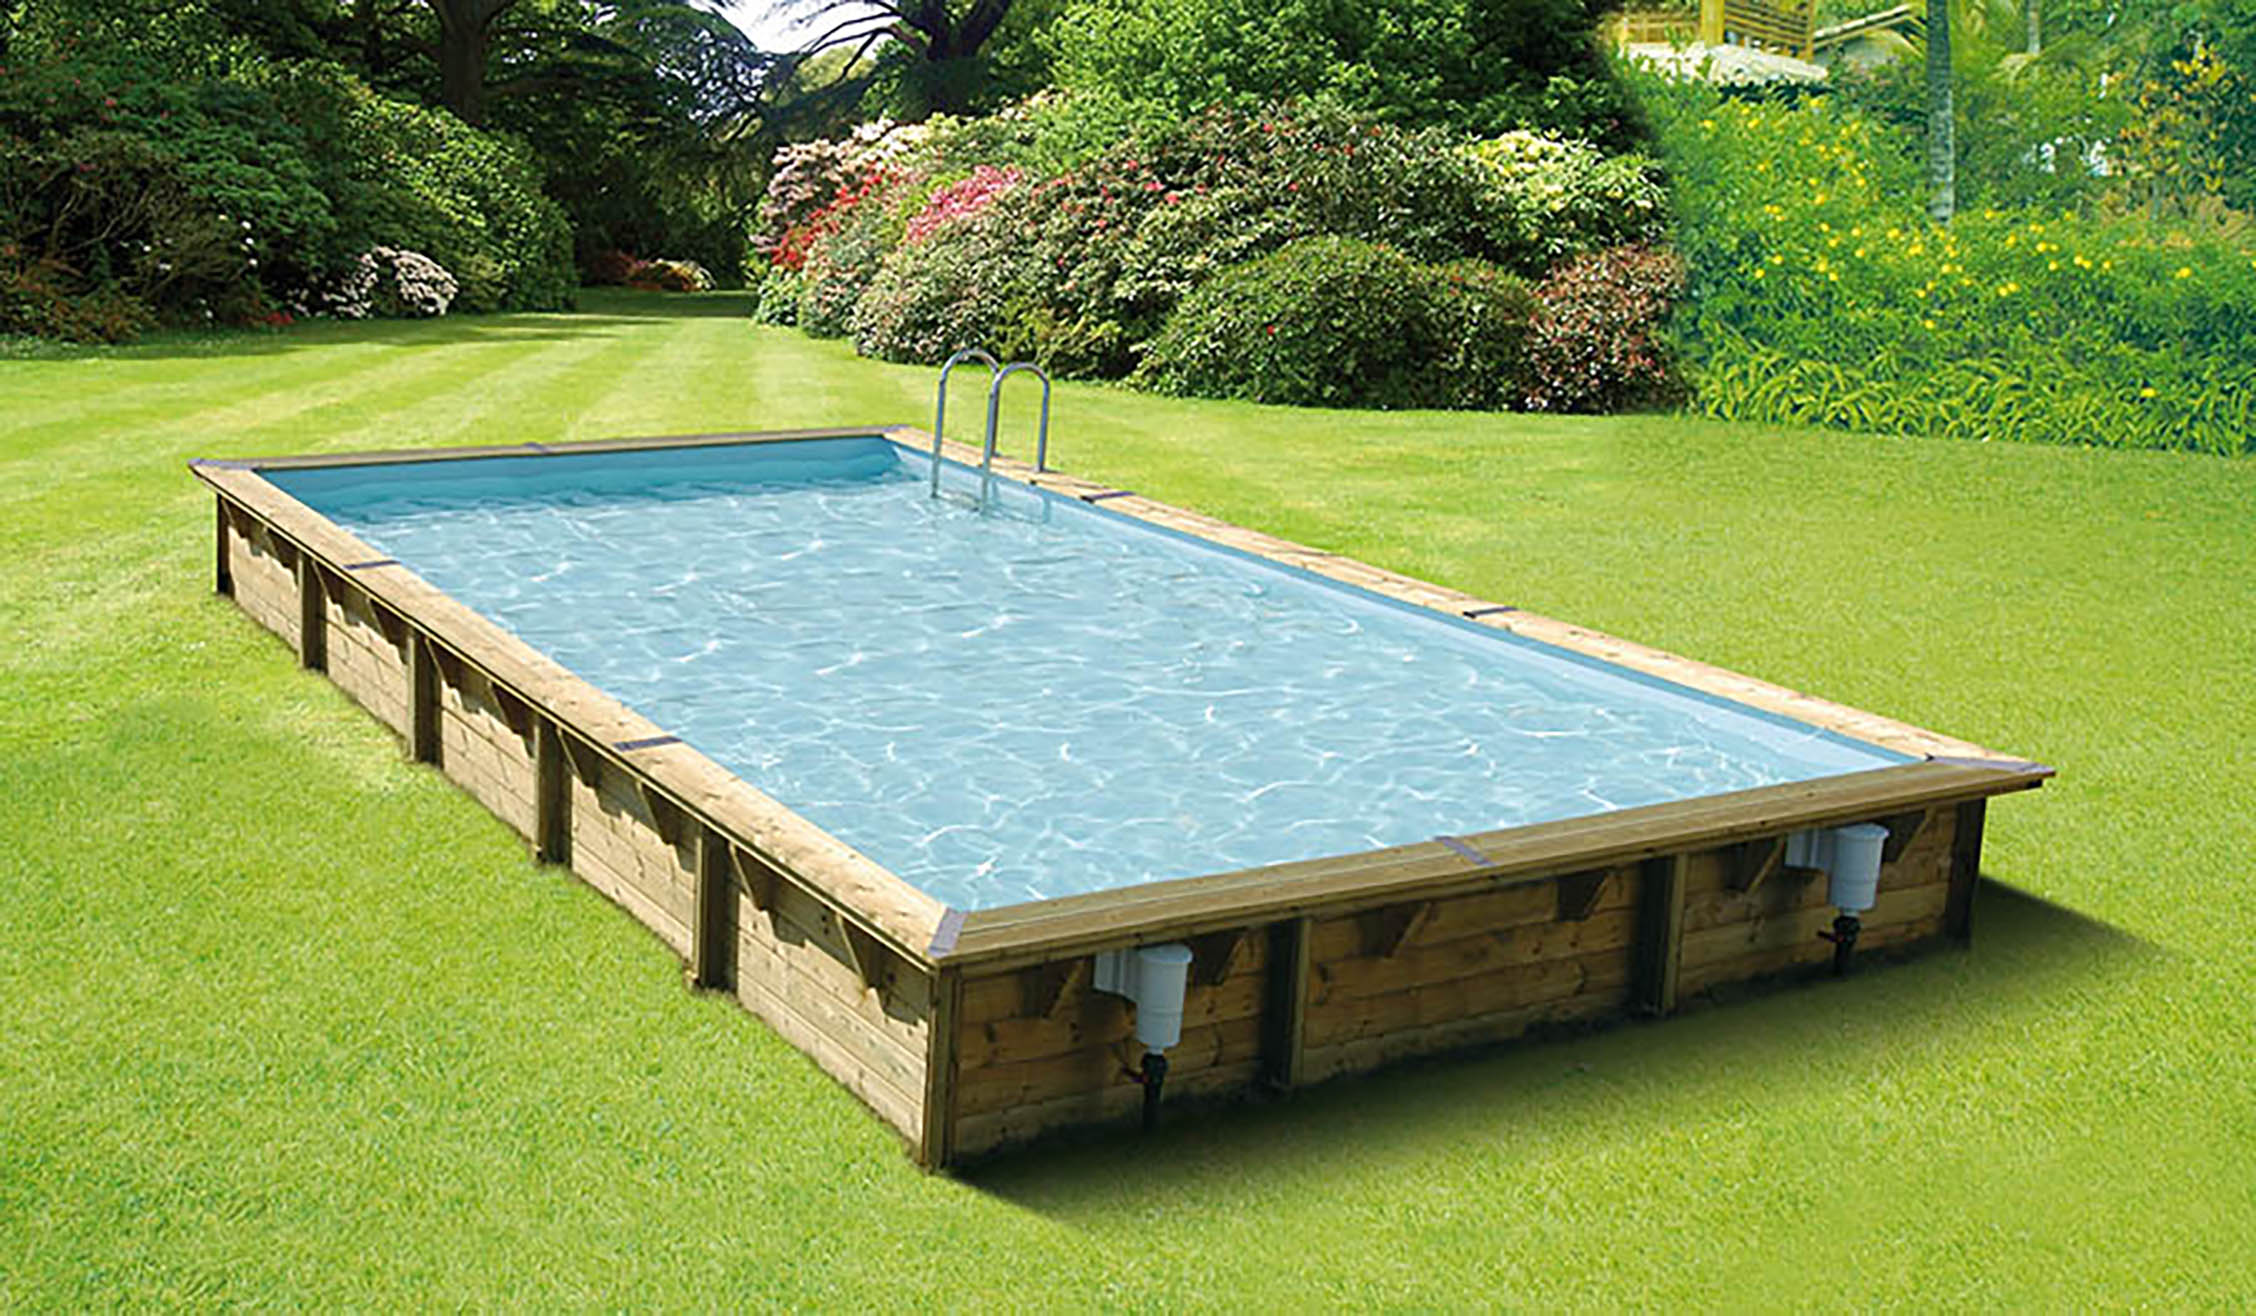 Amenagement piscine bois hors sol id es for Amenagement de piscine